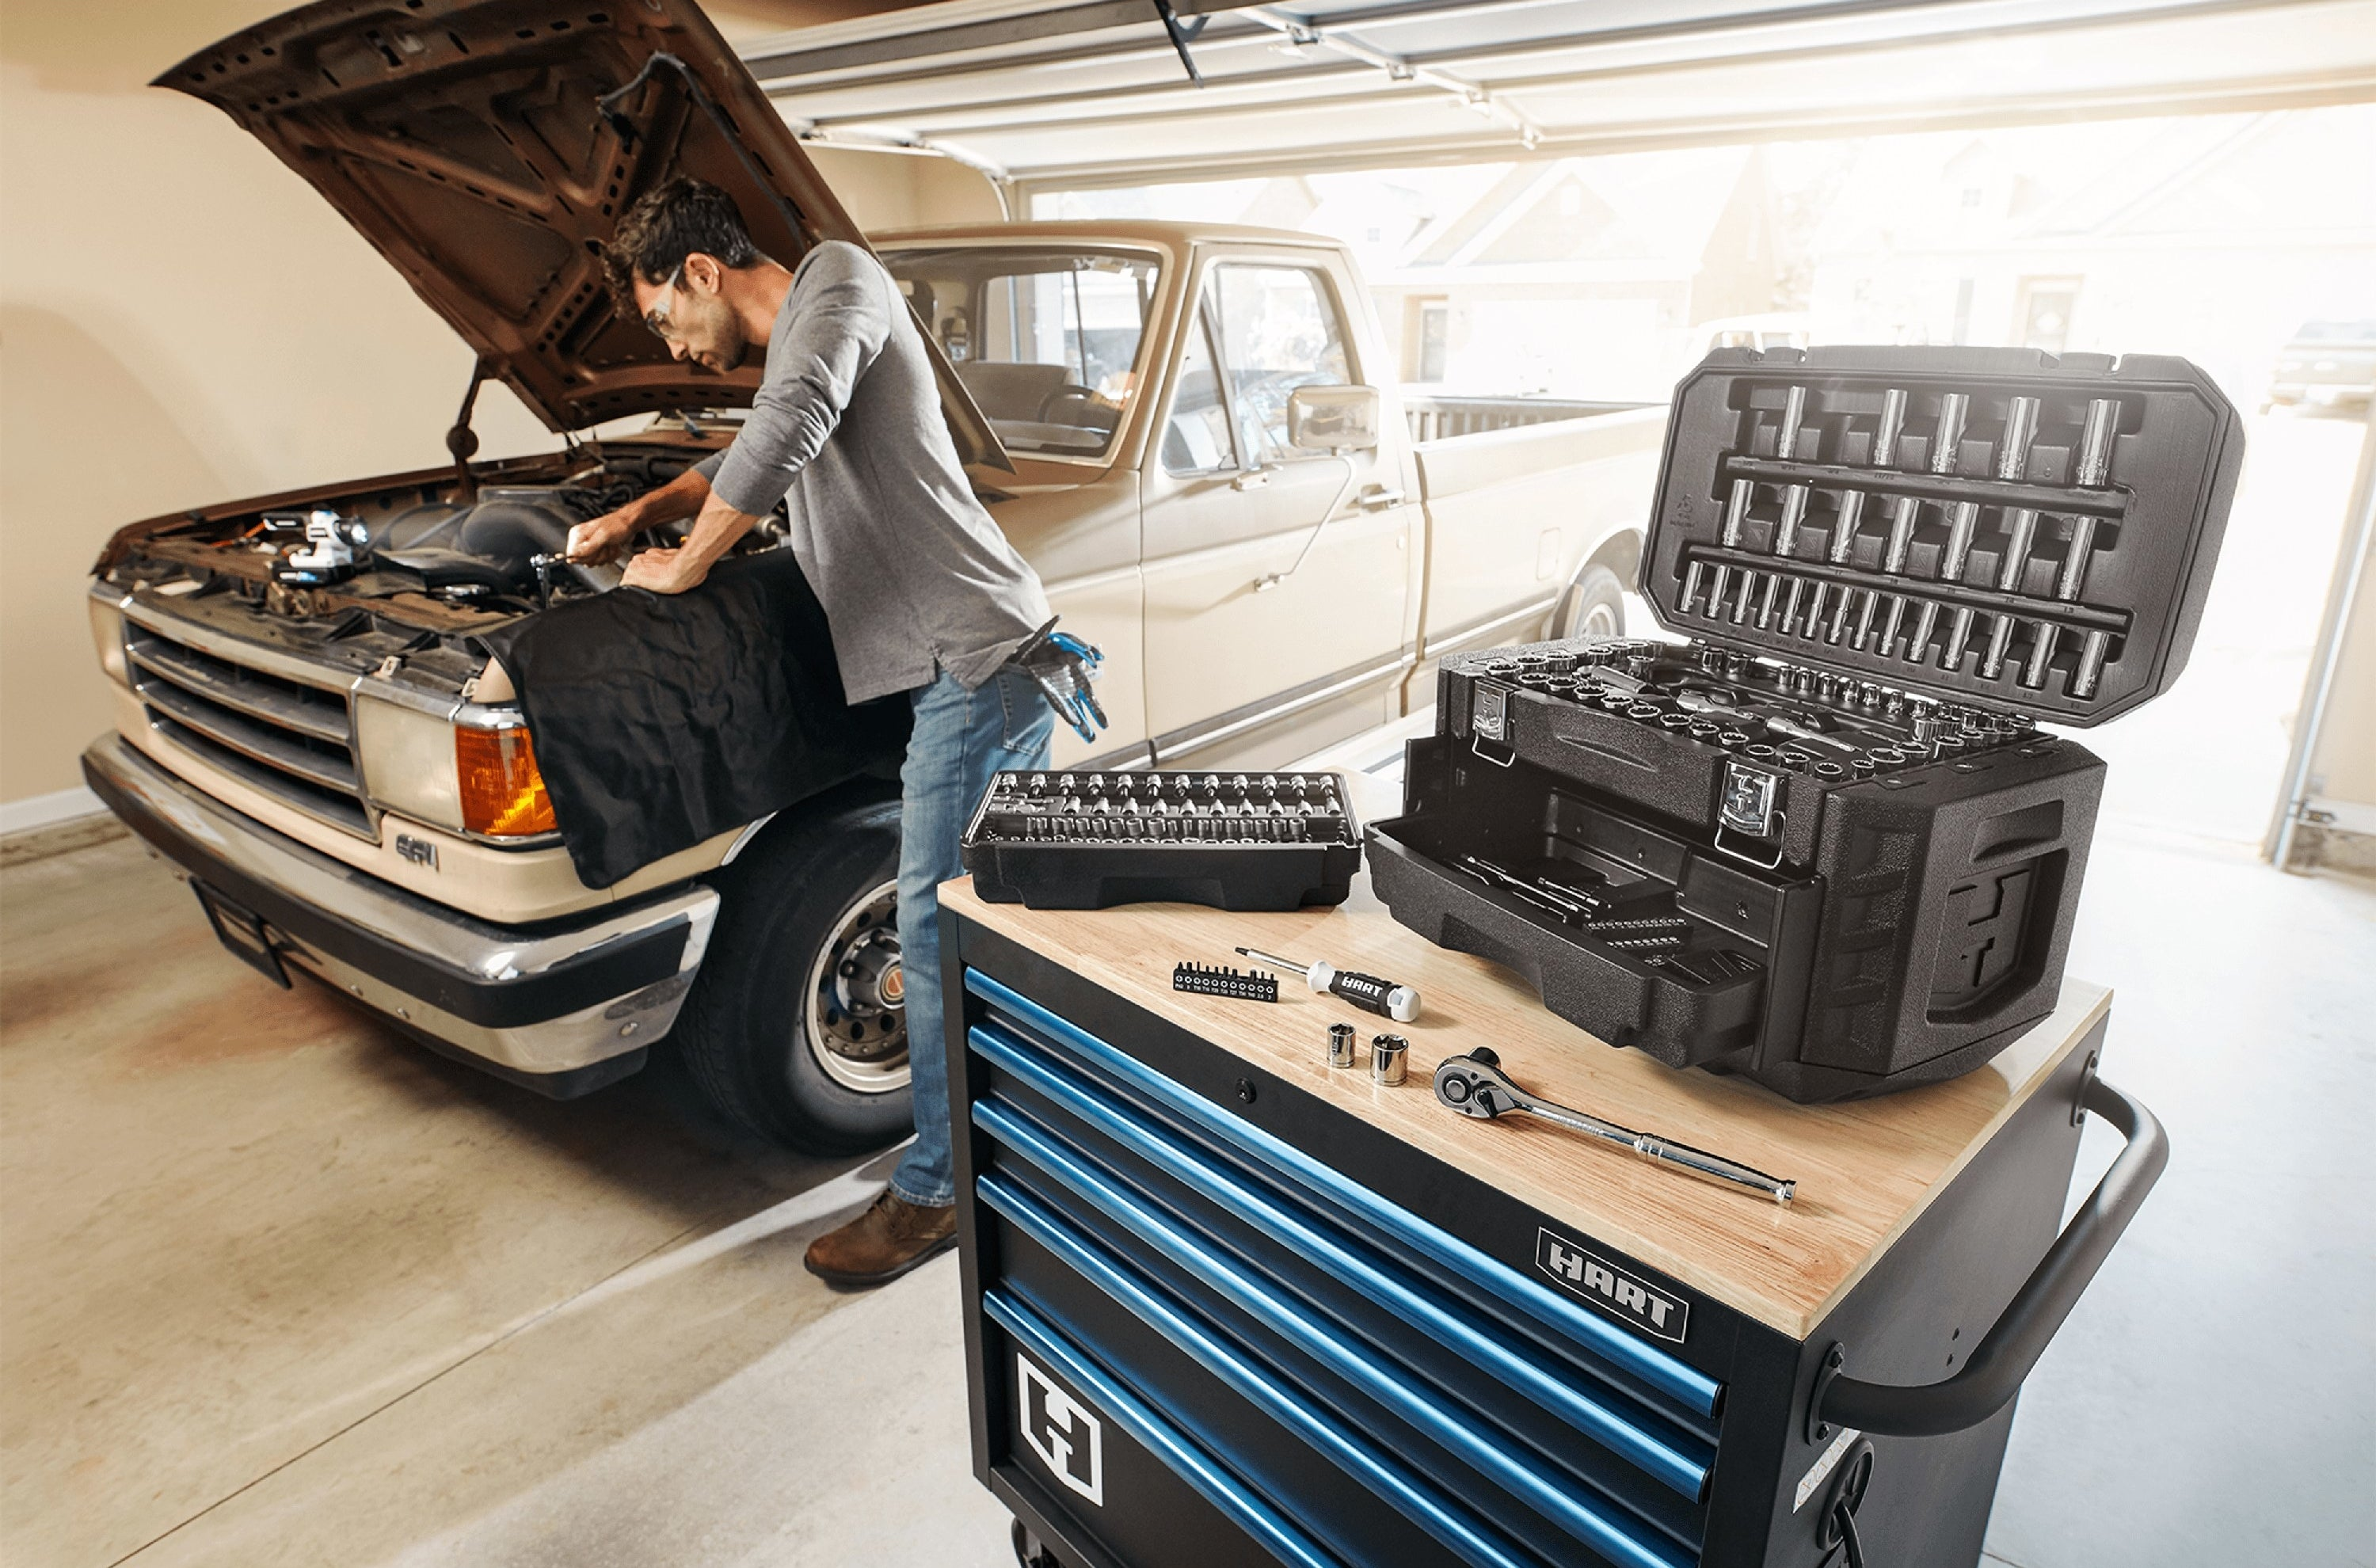 black tool kit with 215 pieces in the foreground with a person working on their car in the background